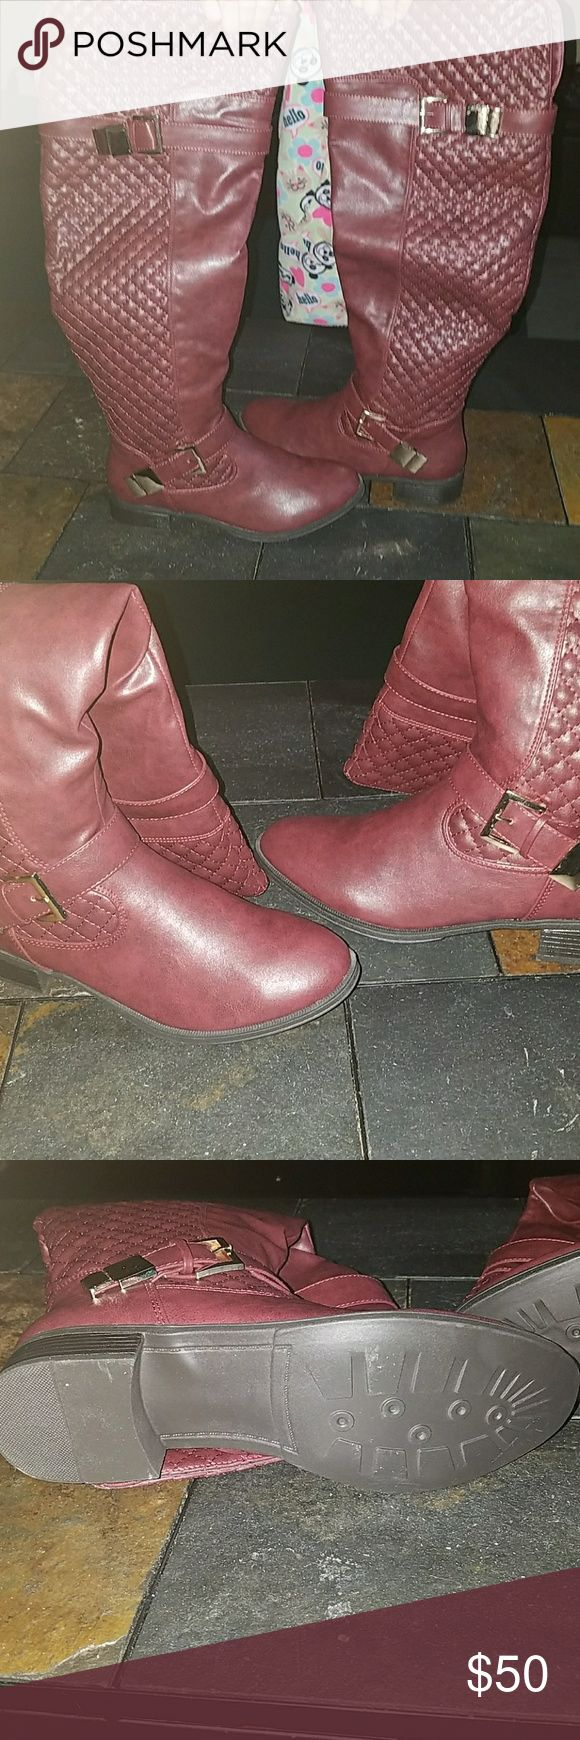 Over the knee knee high boots 8 w Shoe dazzle rafaella wide over the knee tall boots wine size 8 w. Brand new in box, smoke free home Shoe Dazzle Shoes Over the Knee Boots